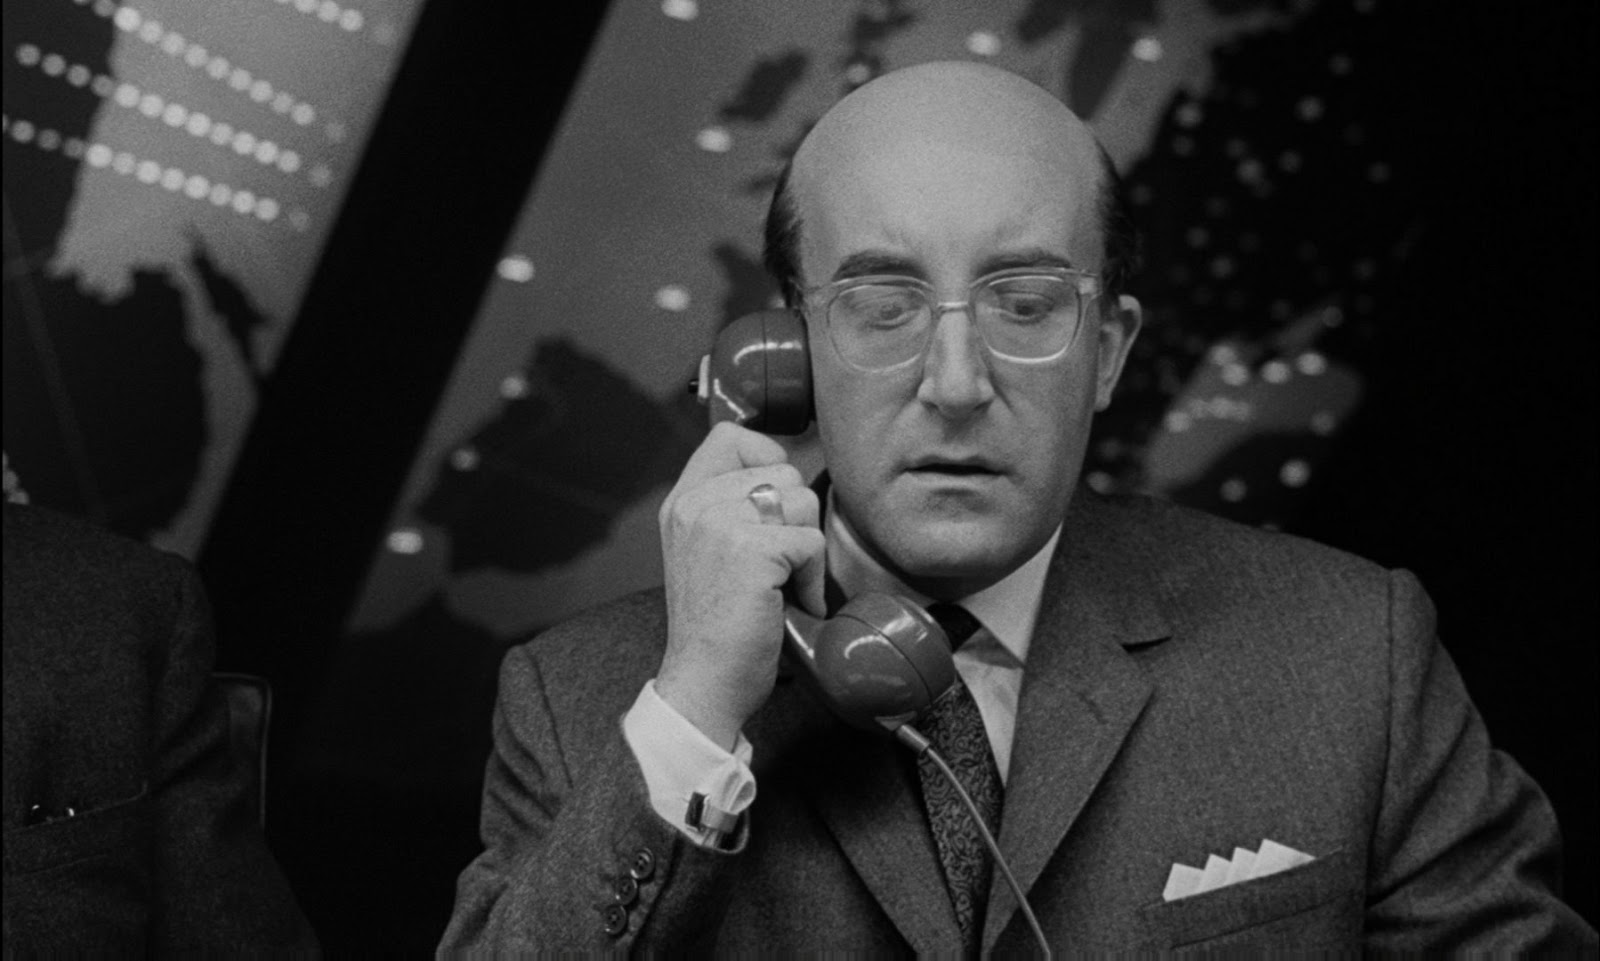 That Dr. Strangelove scene where the U.S. President phones Russia ...